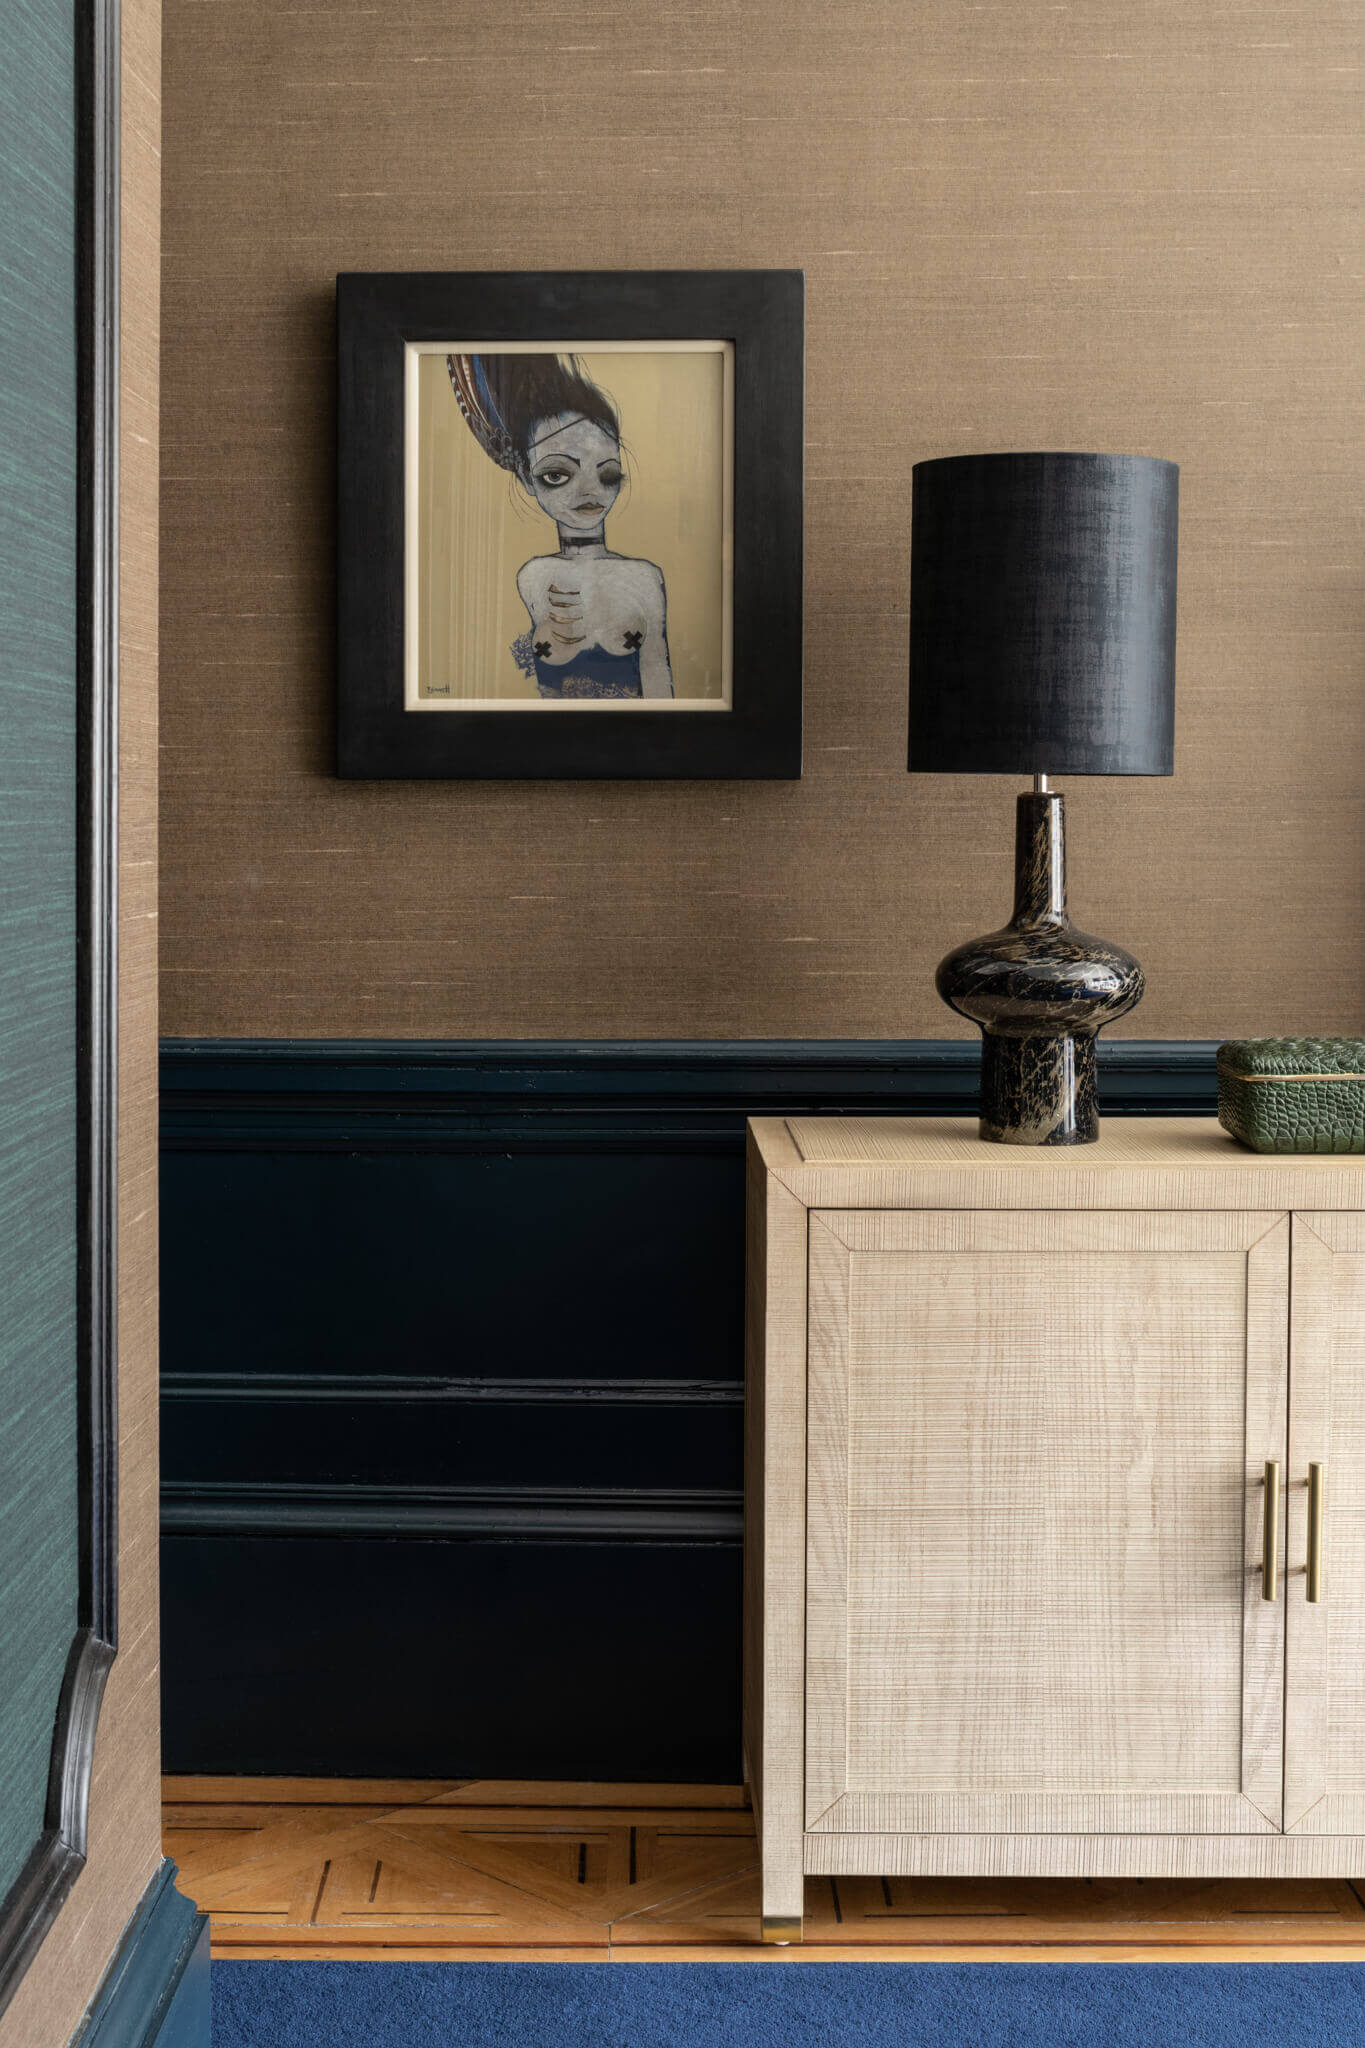 Print-Bed-Cabinet-and-Painting